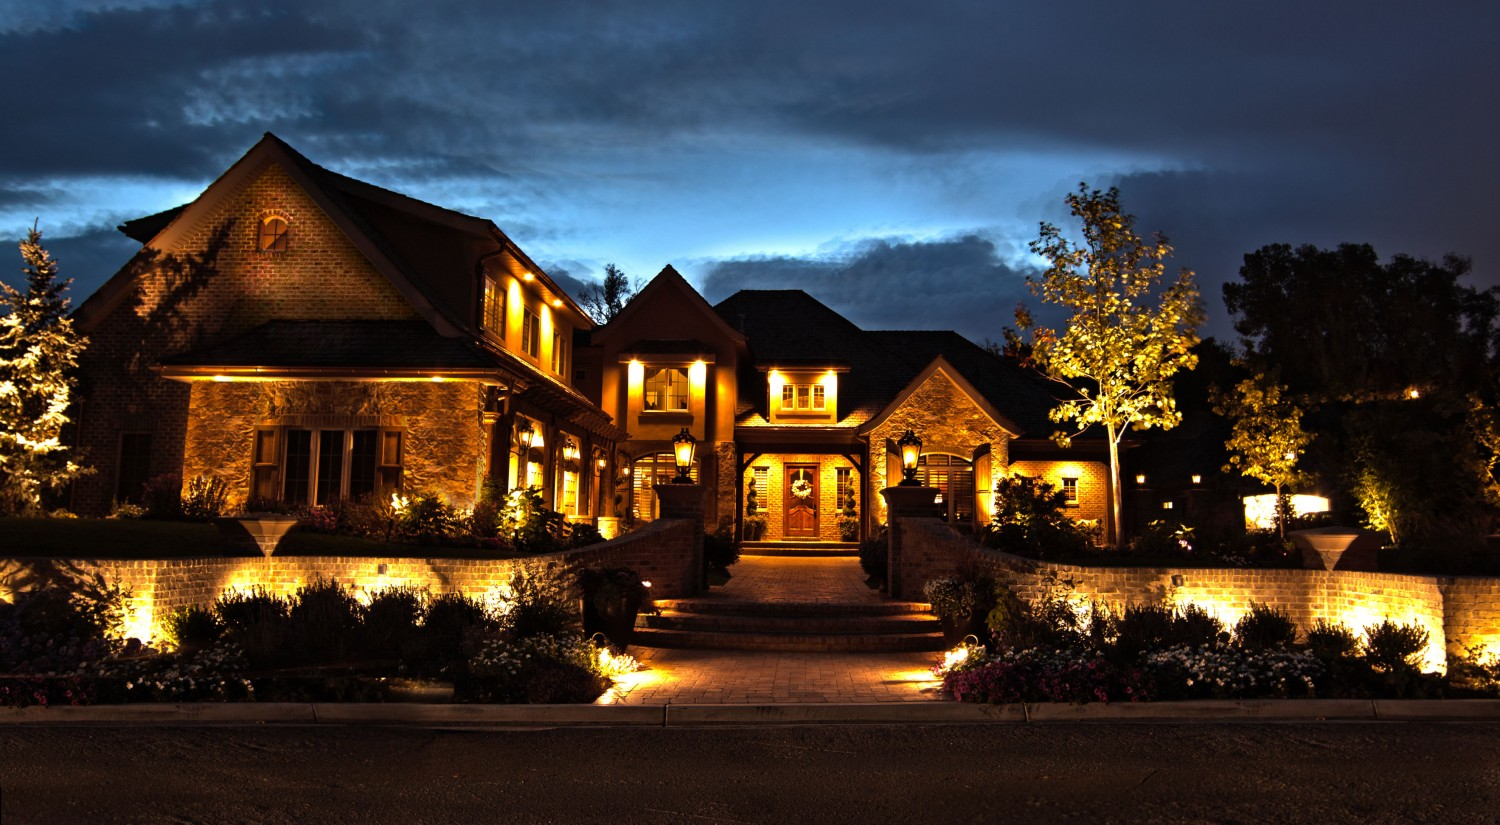 Light your home with Brite Nites